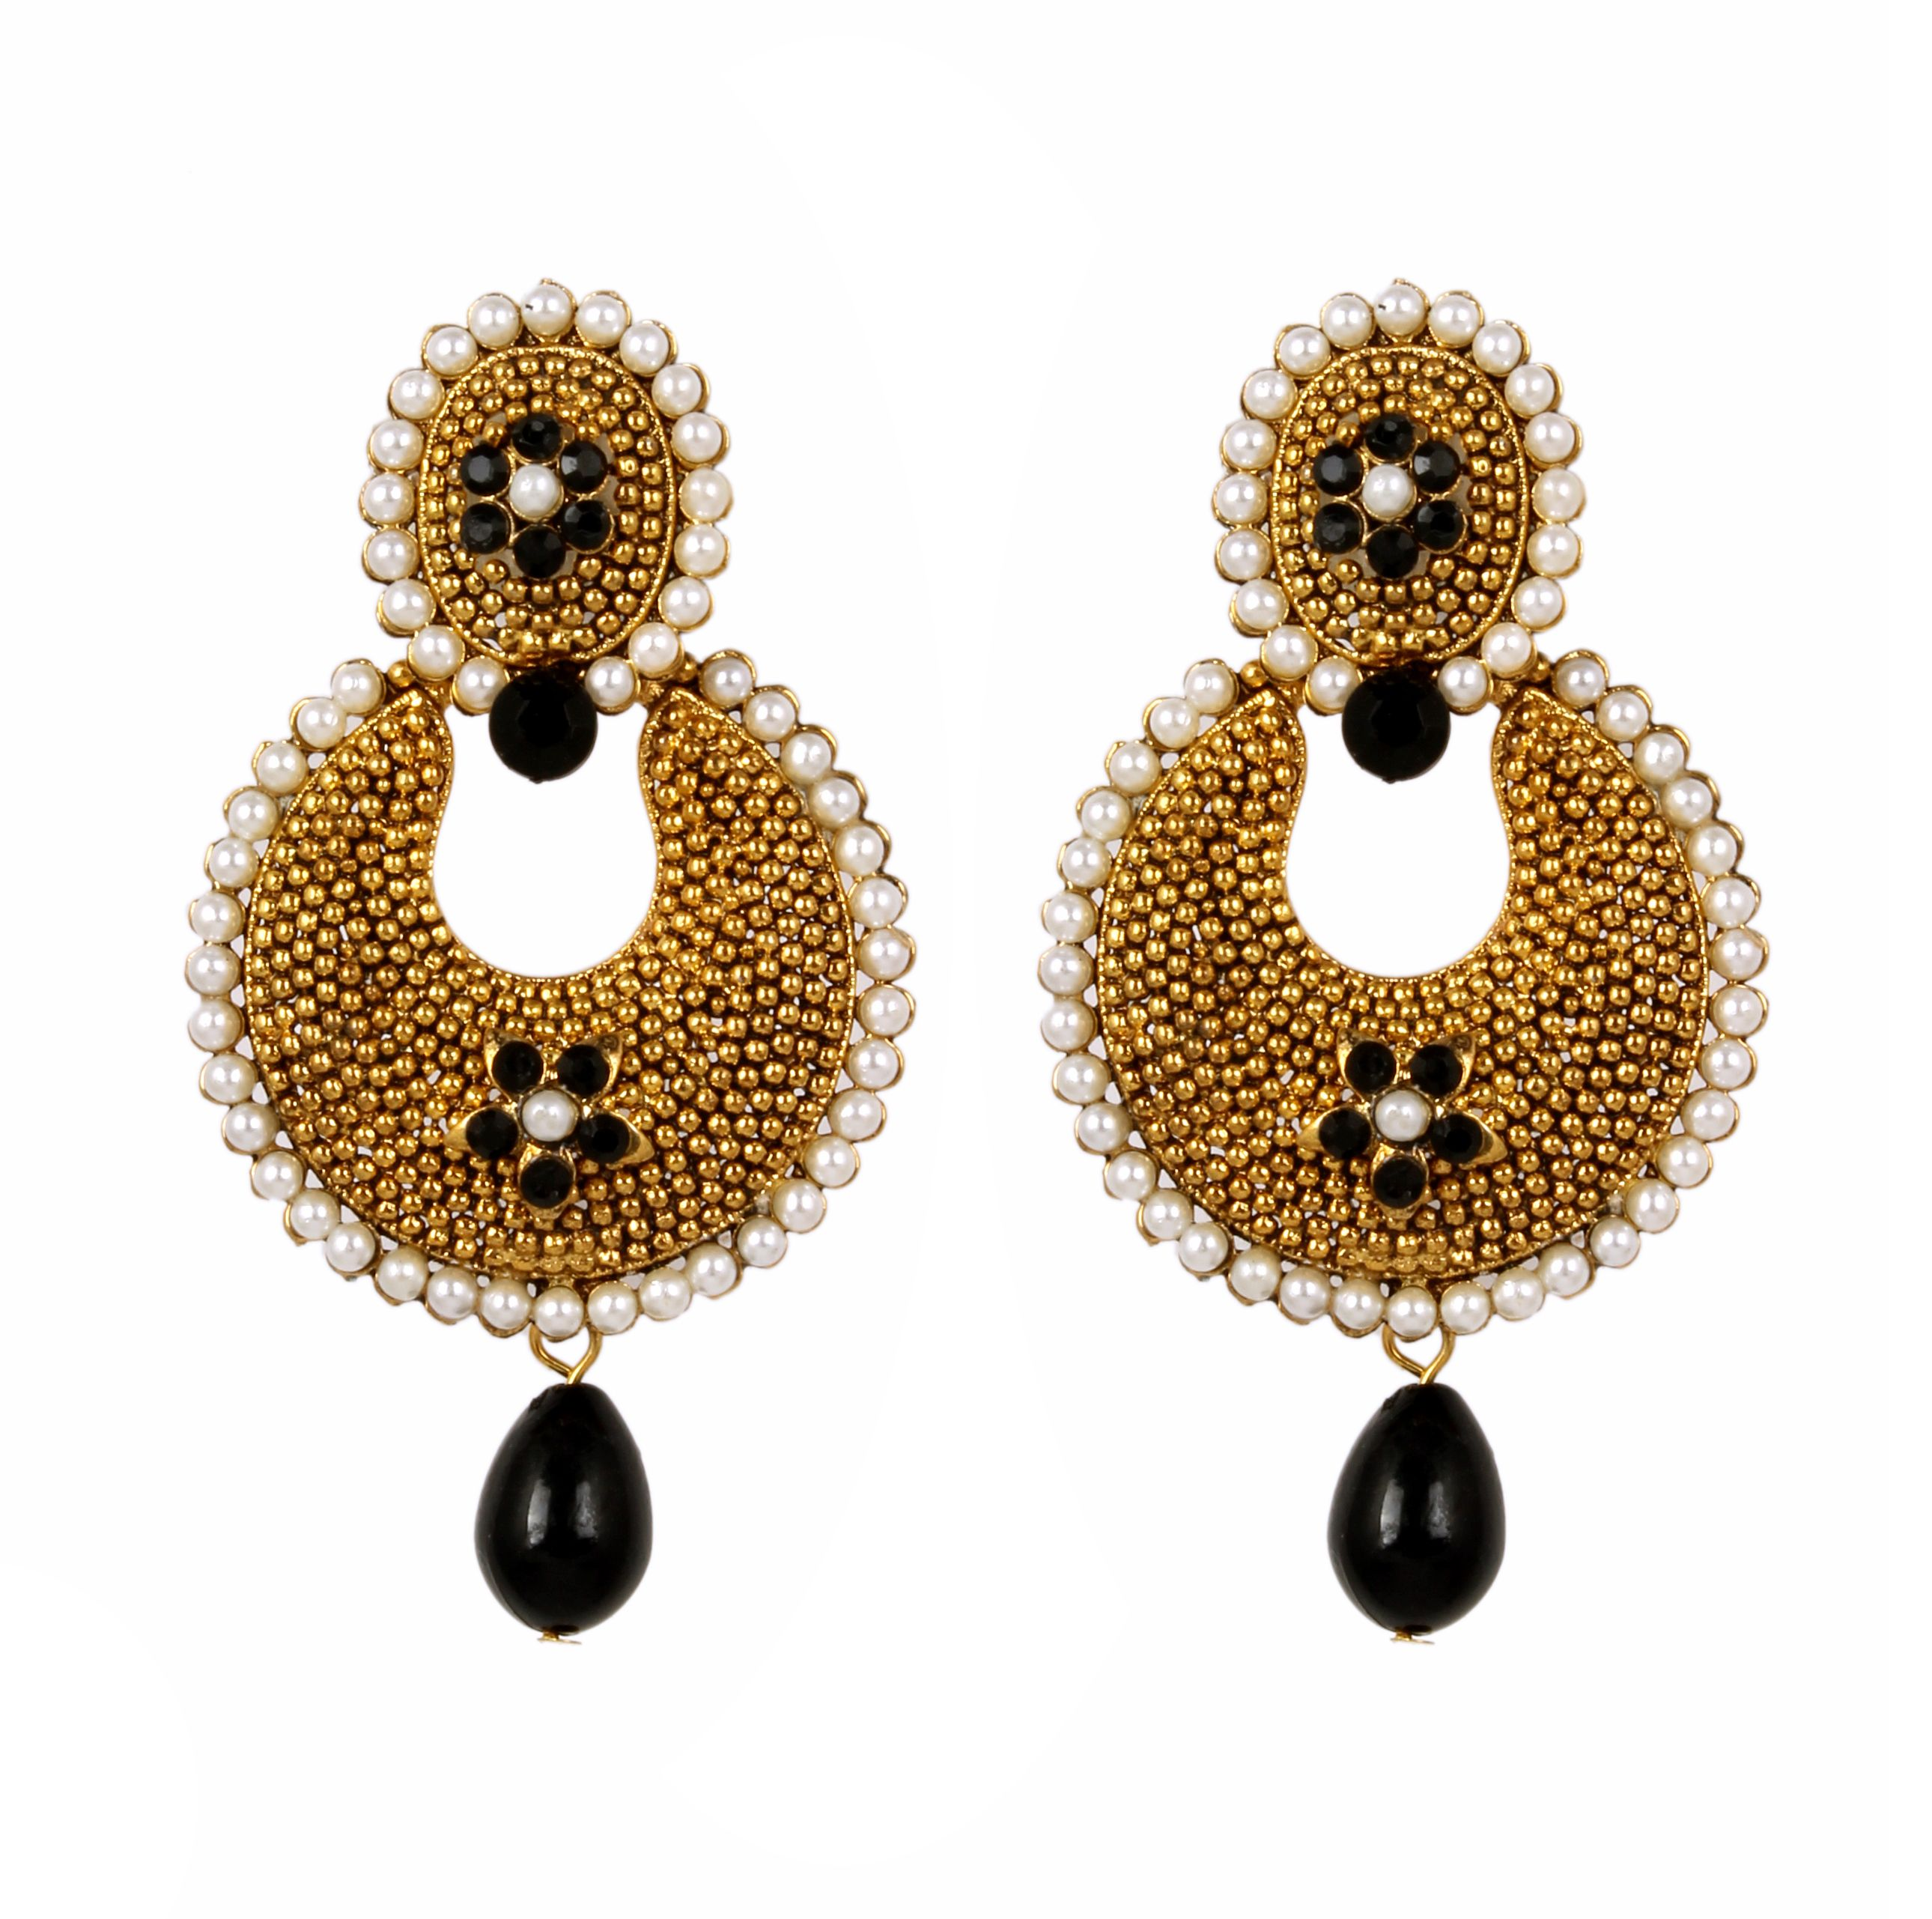 Earrings Online At Lowest Prices In India Find Hoops